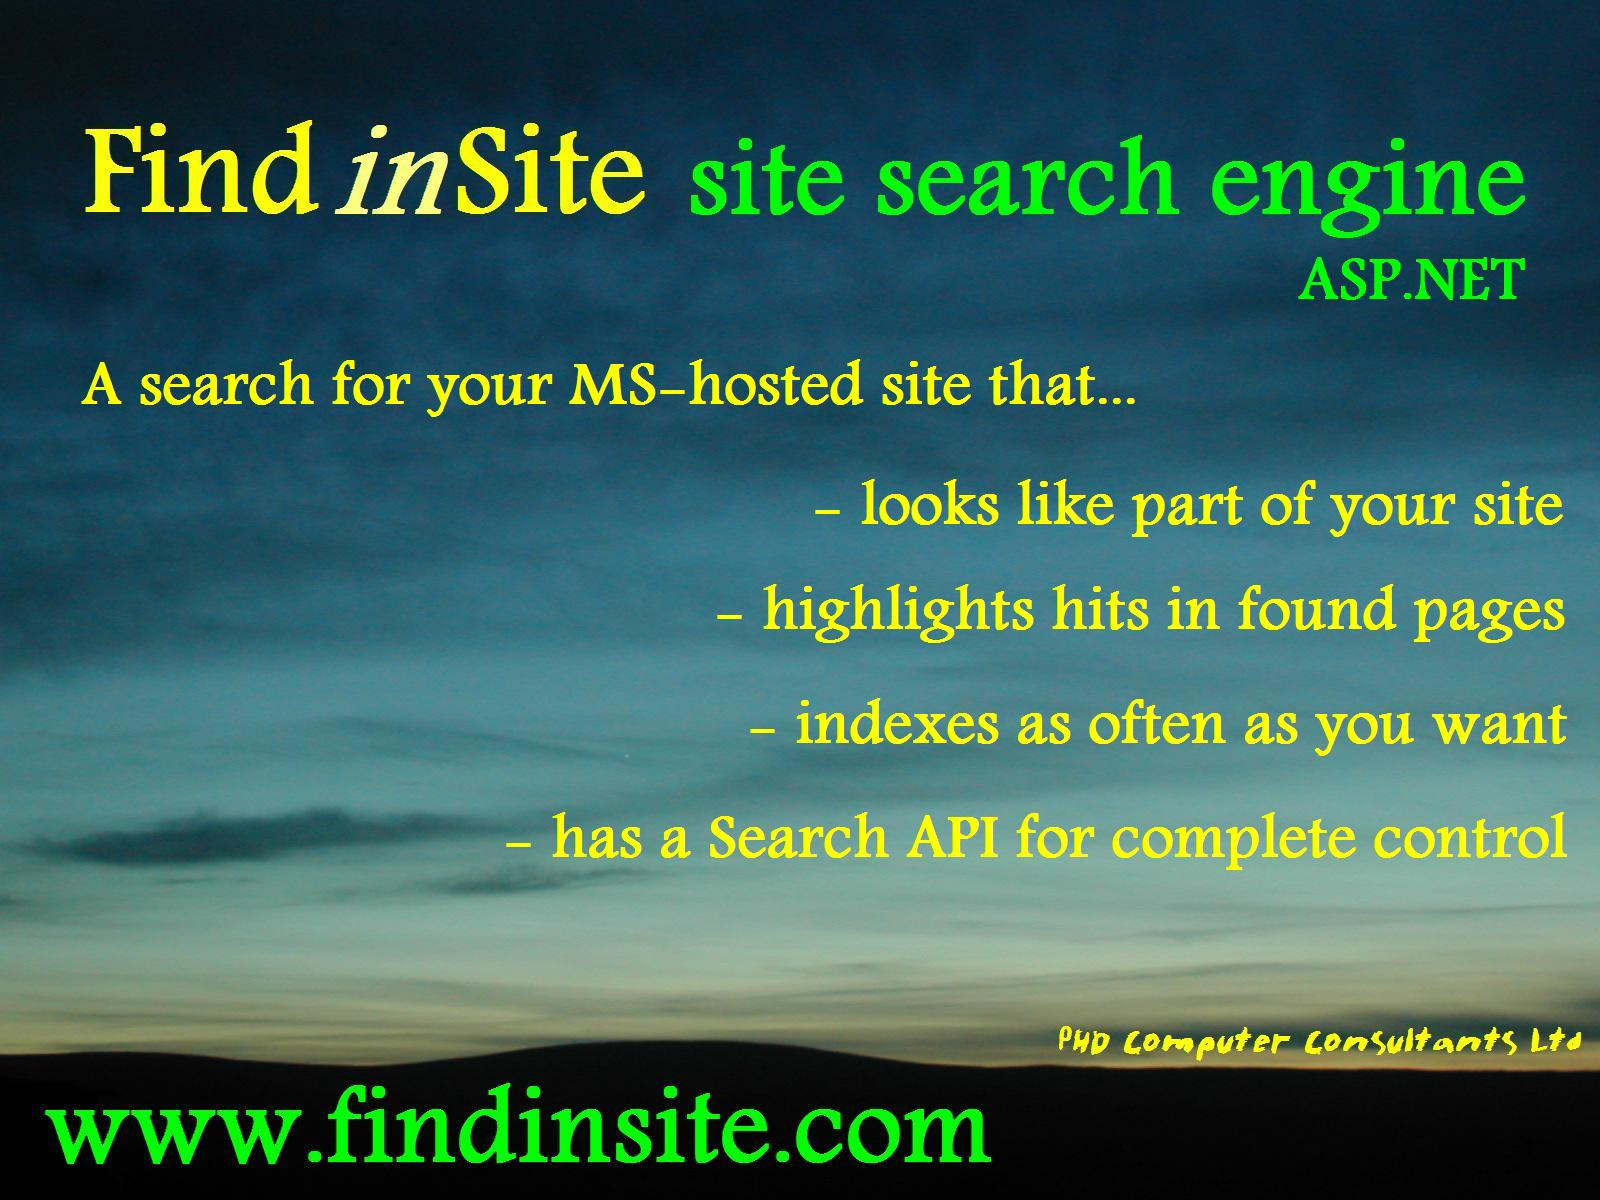 Find in Site advert